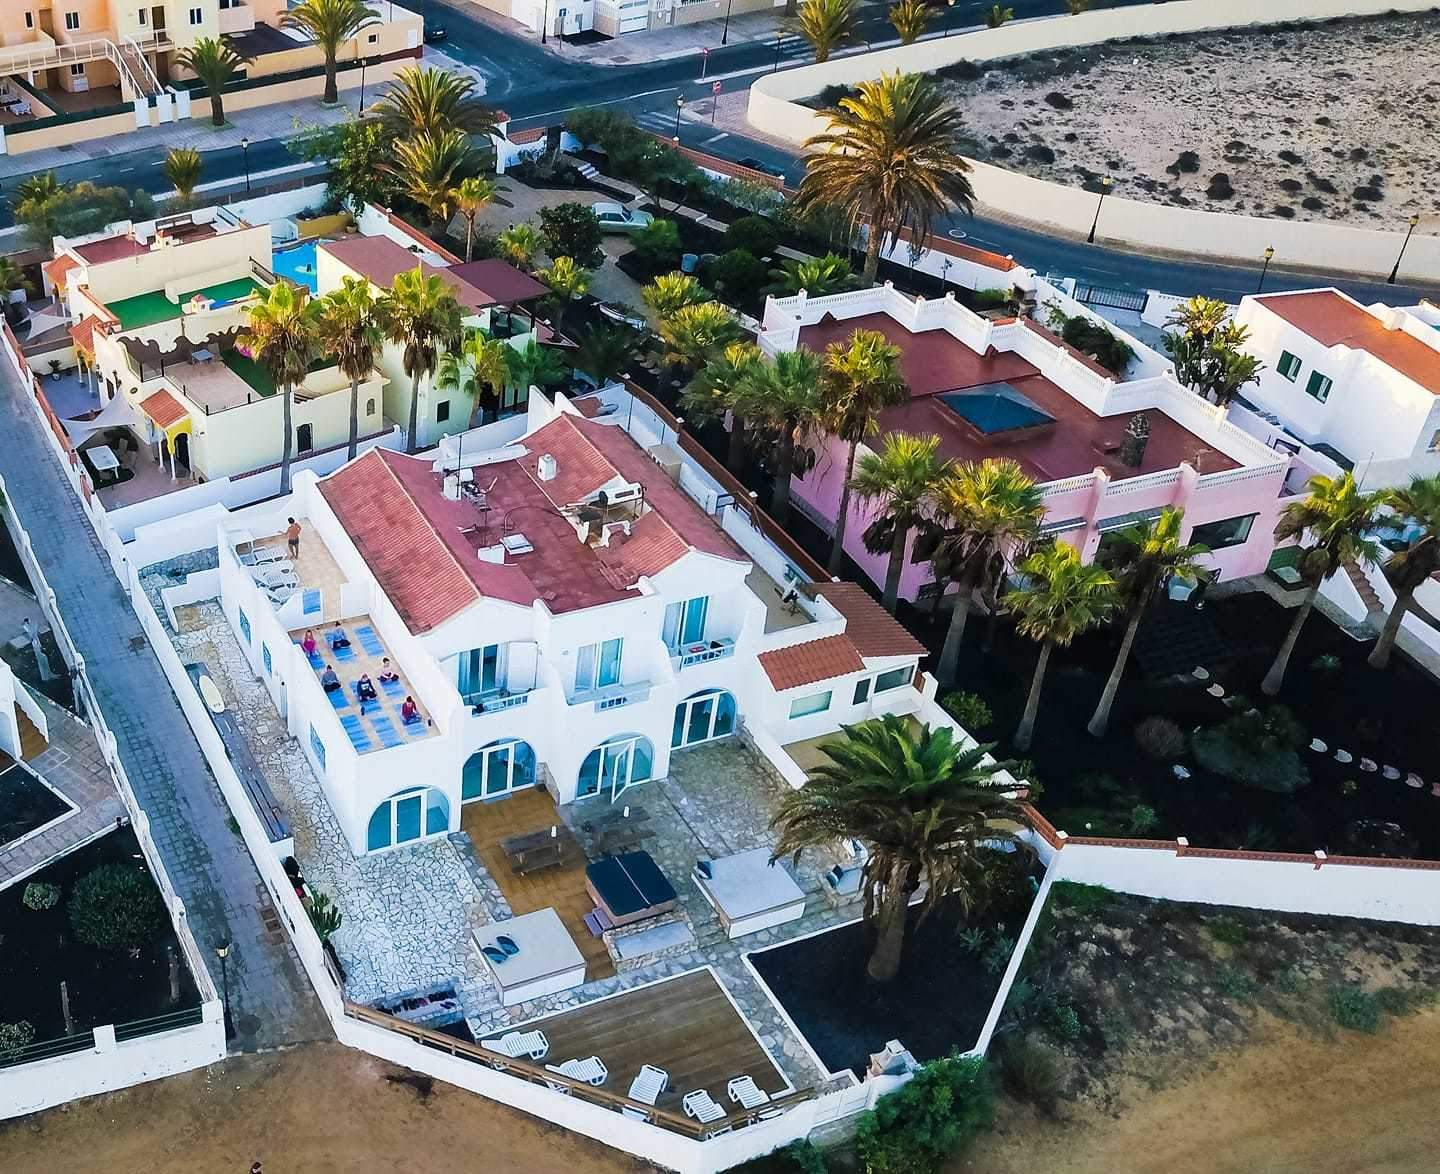 https://www.surfholidays.com/accommodation/canary-islands/fuerteventura/wave-rider-surf-villa